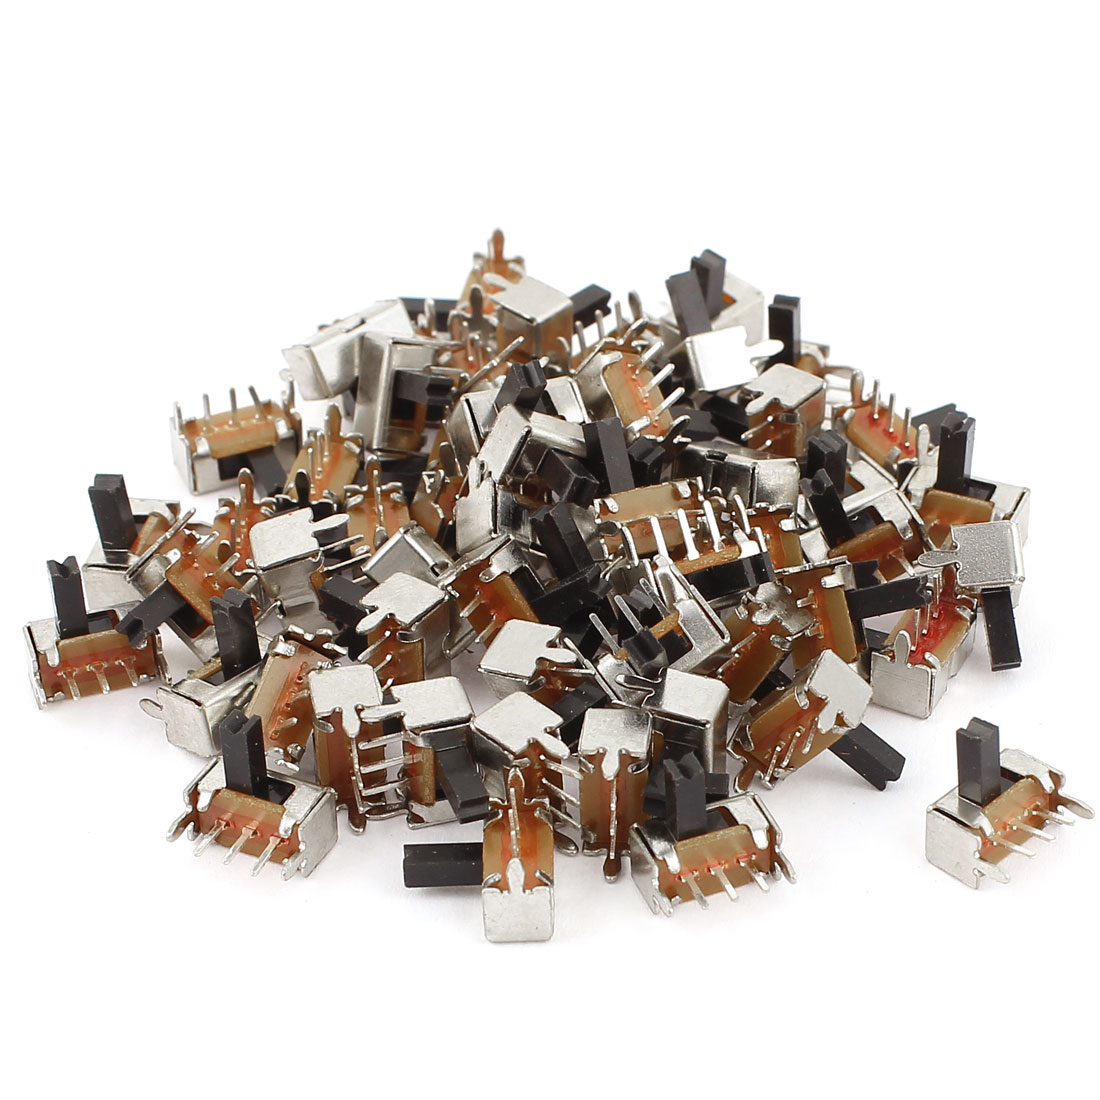 60 Pcs 2 Position 3Pins SPDT Right Angle Panel Mount Slide Switch DC 50V 0.8A